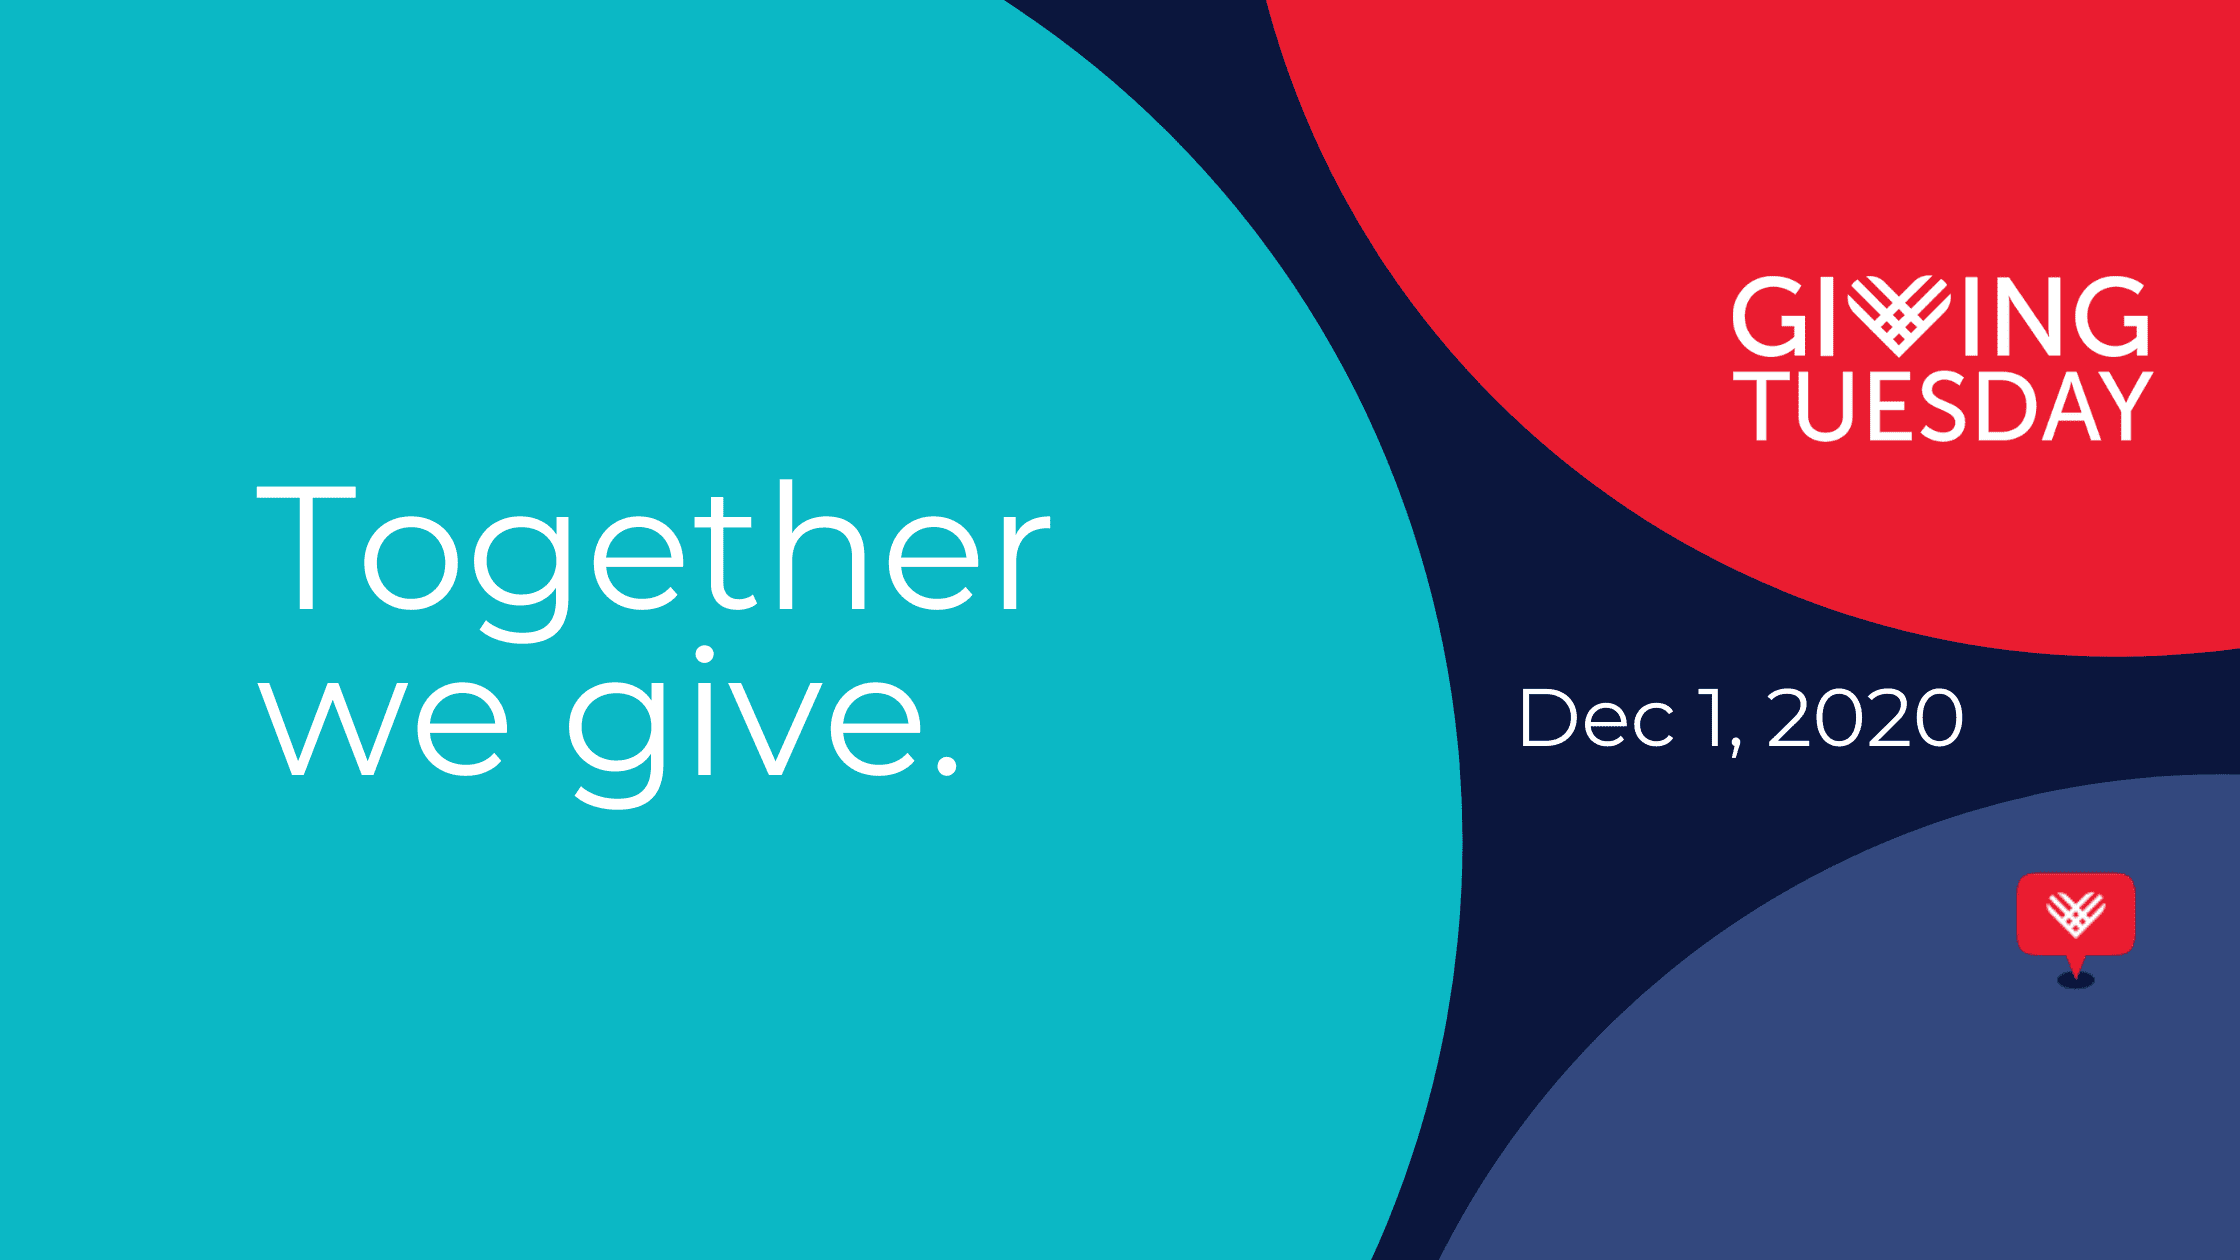 Together we give. Giving Tuesday 2020